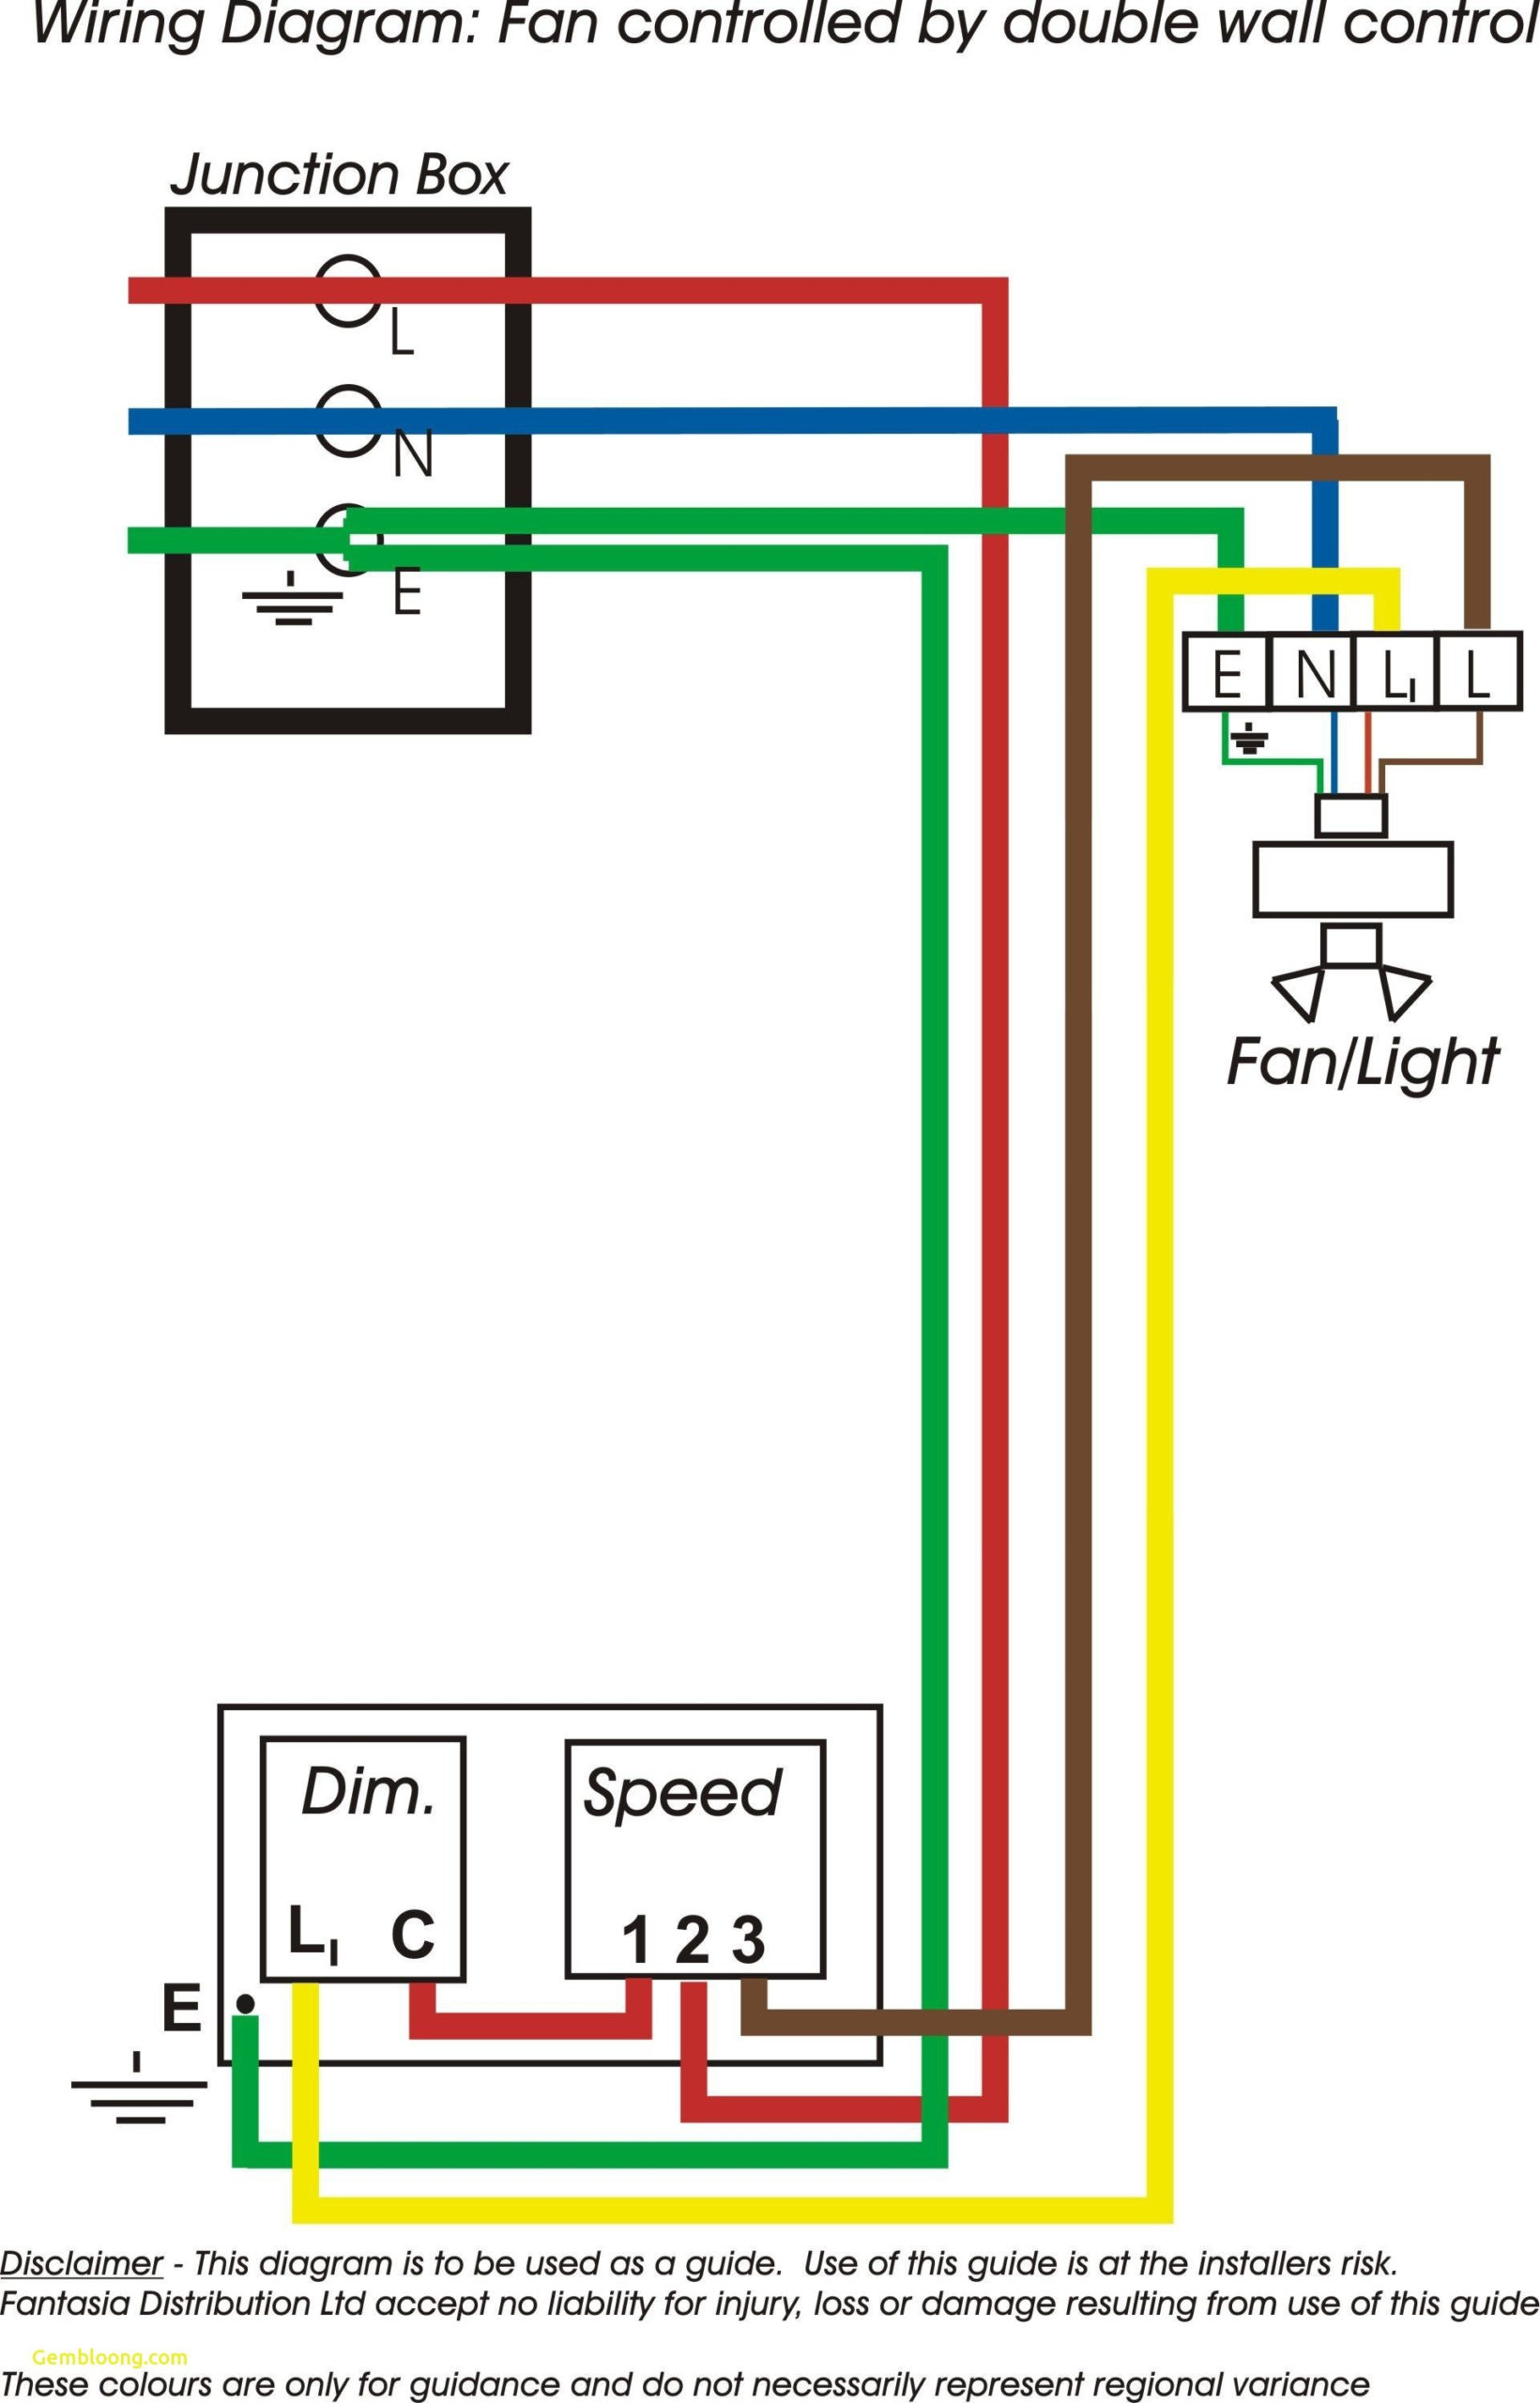 14 Automatic Wiring Diagram For Ceiling Fan | Ceiling Fan | Wiring Diagram For Ceiling Fan